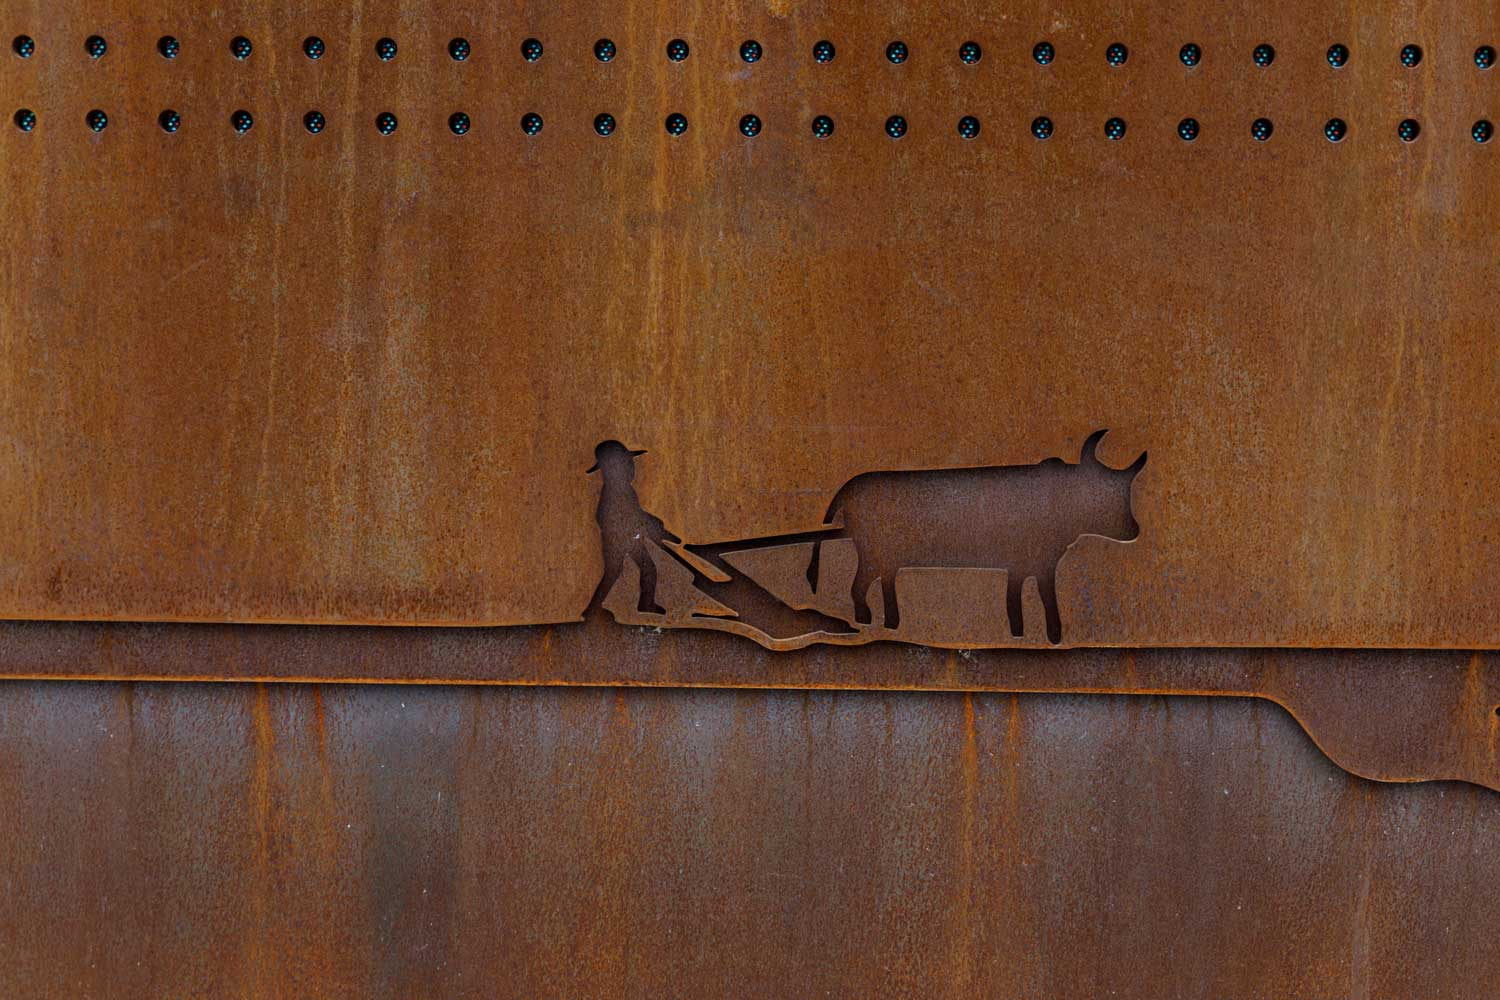 cohlmeyer-architecture-upper-fort-garry-wall-oxen.jpg